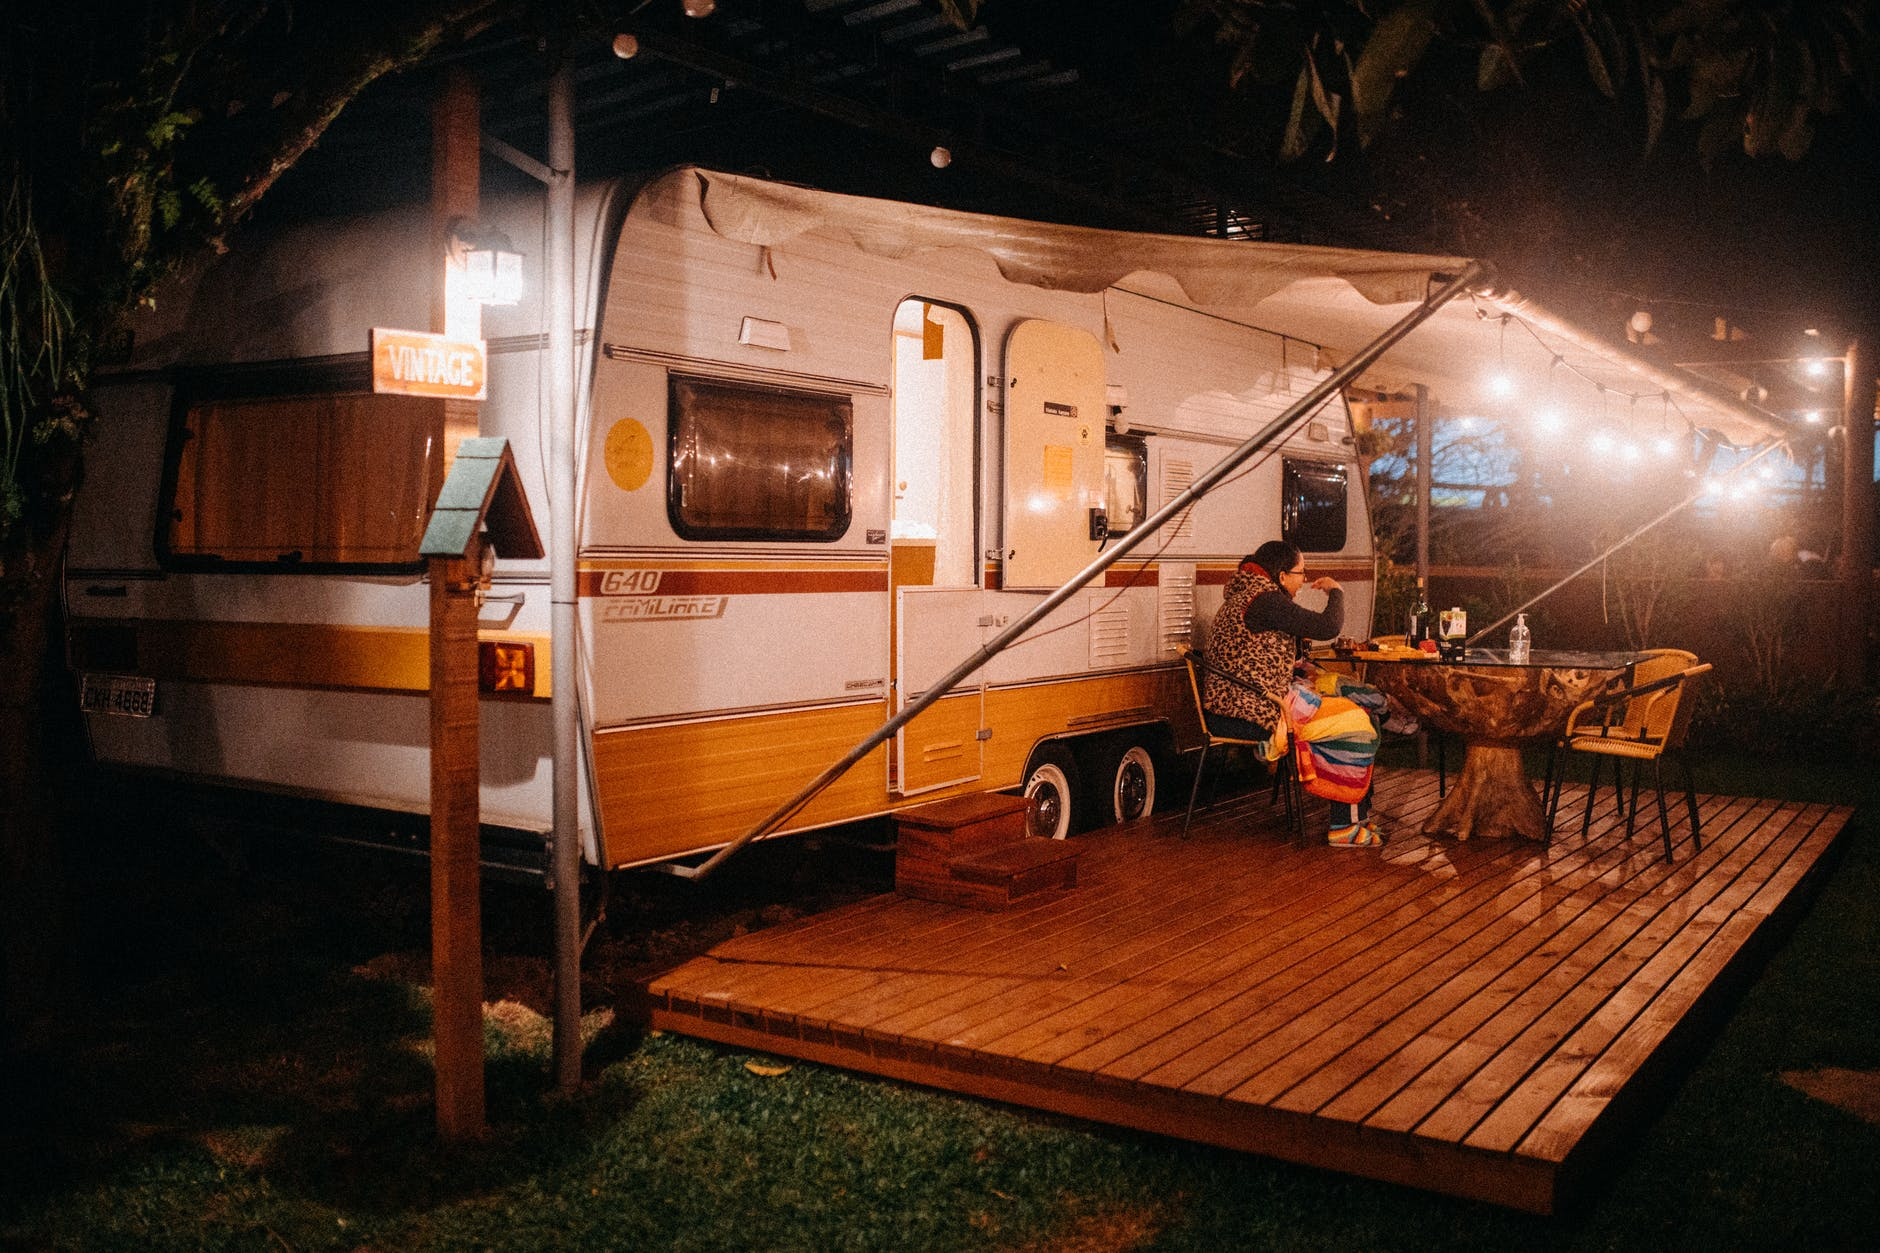 Inconvenience to Campground Neighbors